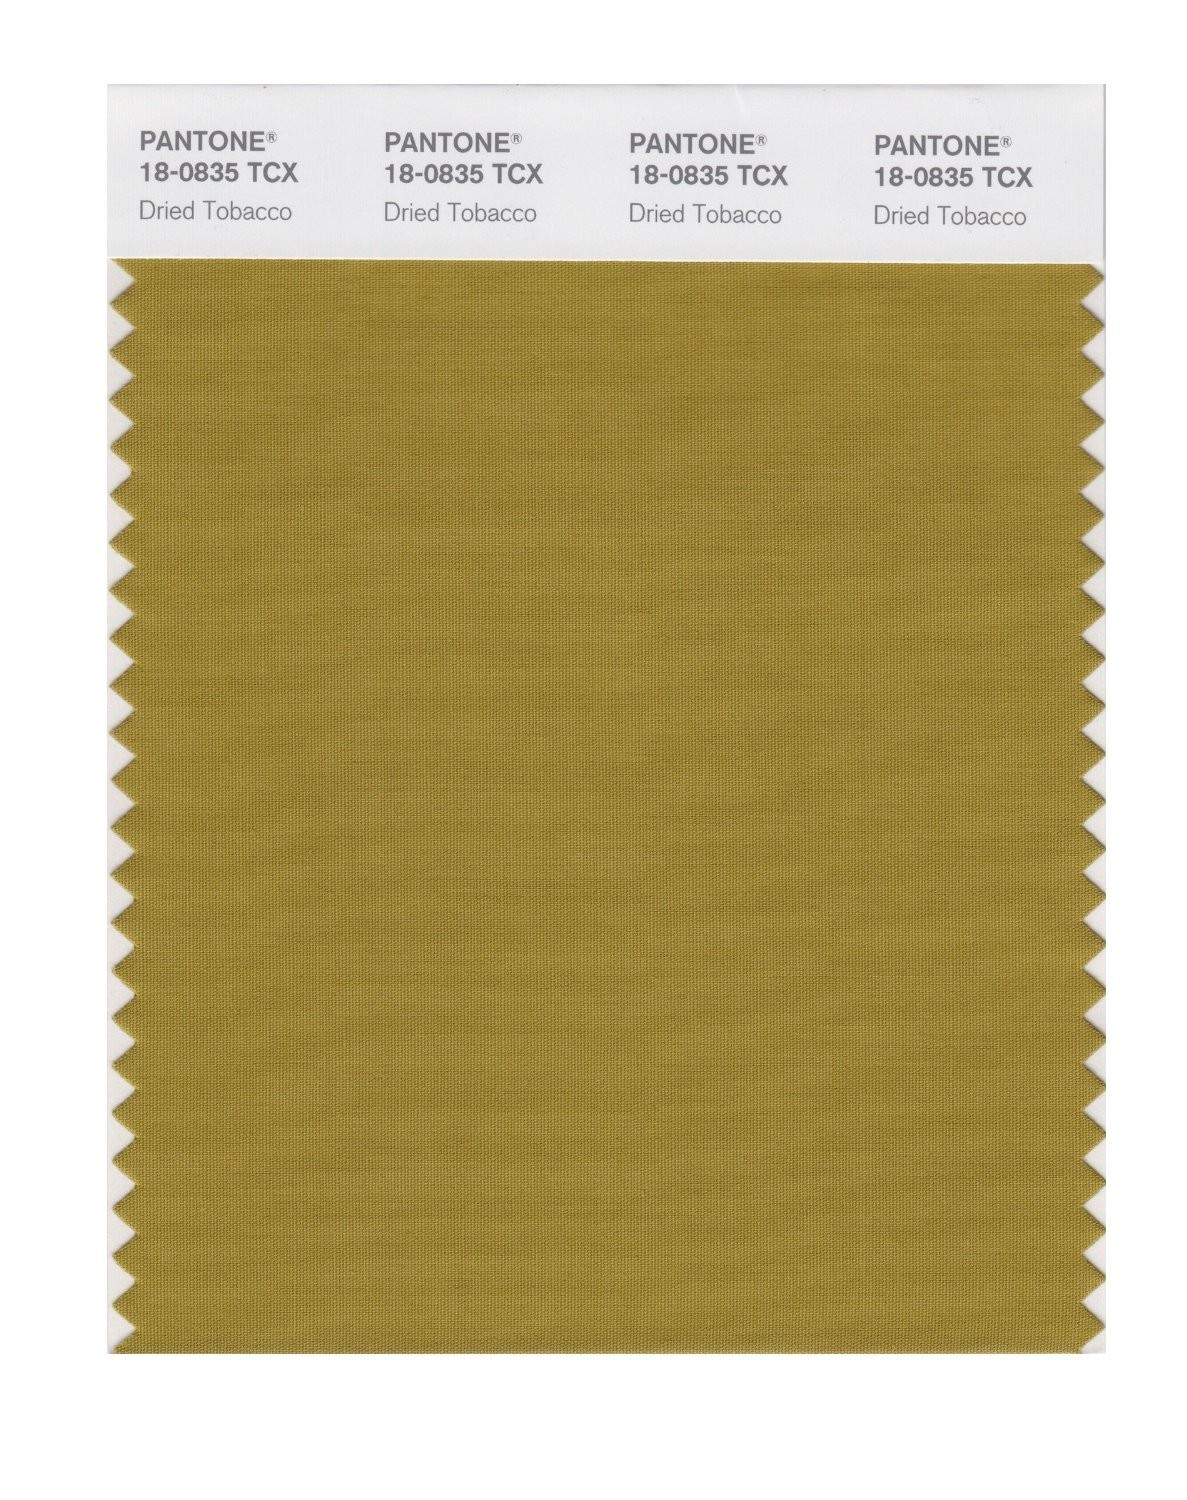 Pantone 18-0835 TCX Swatch Card Dried Tobacco